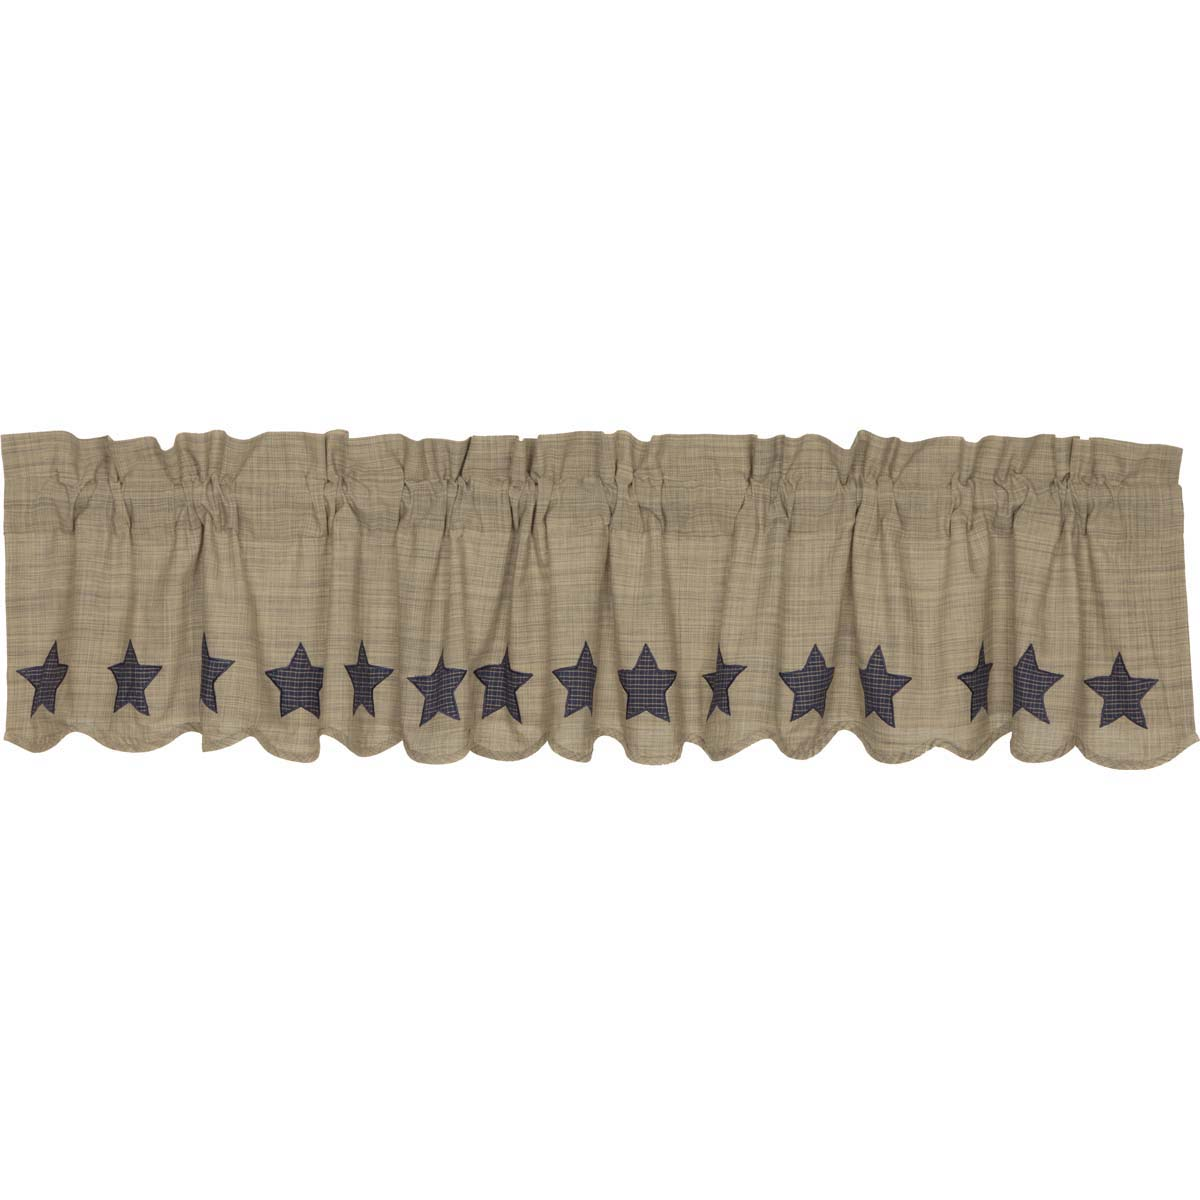 Vincent Scalloped Valance 16x90